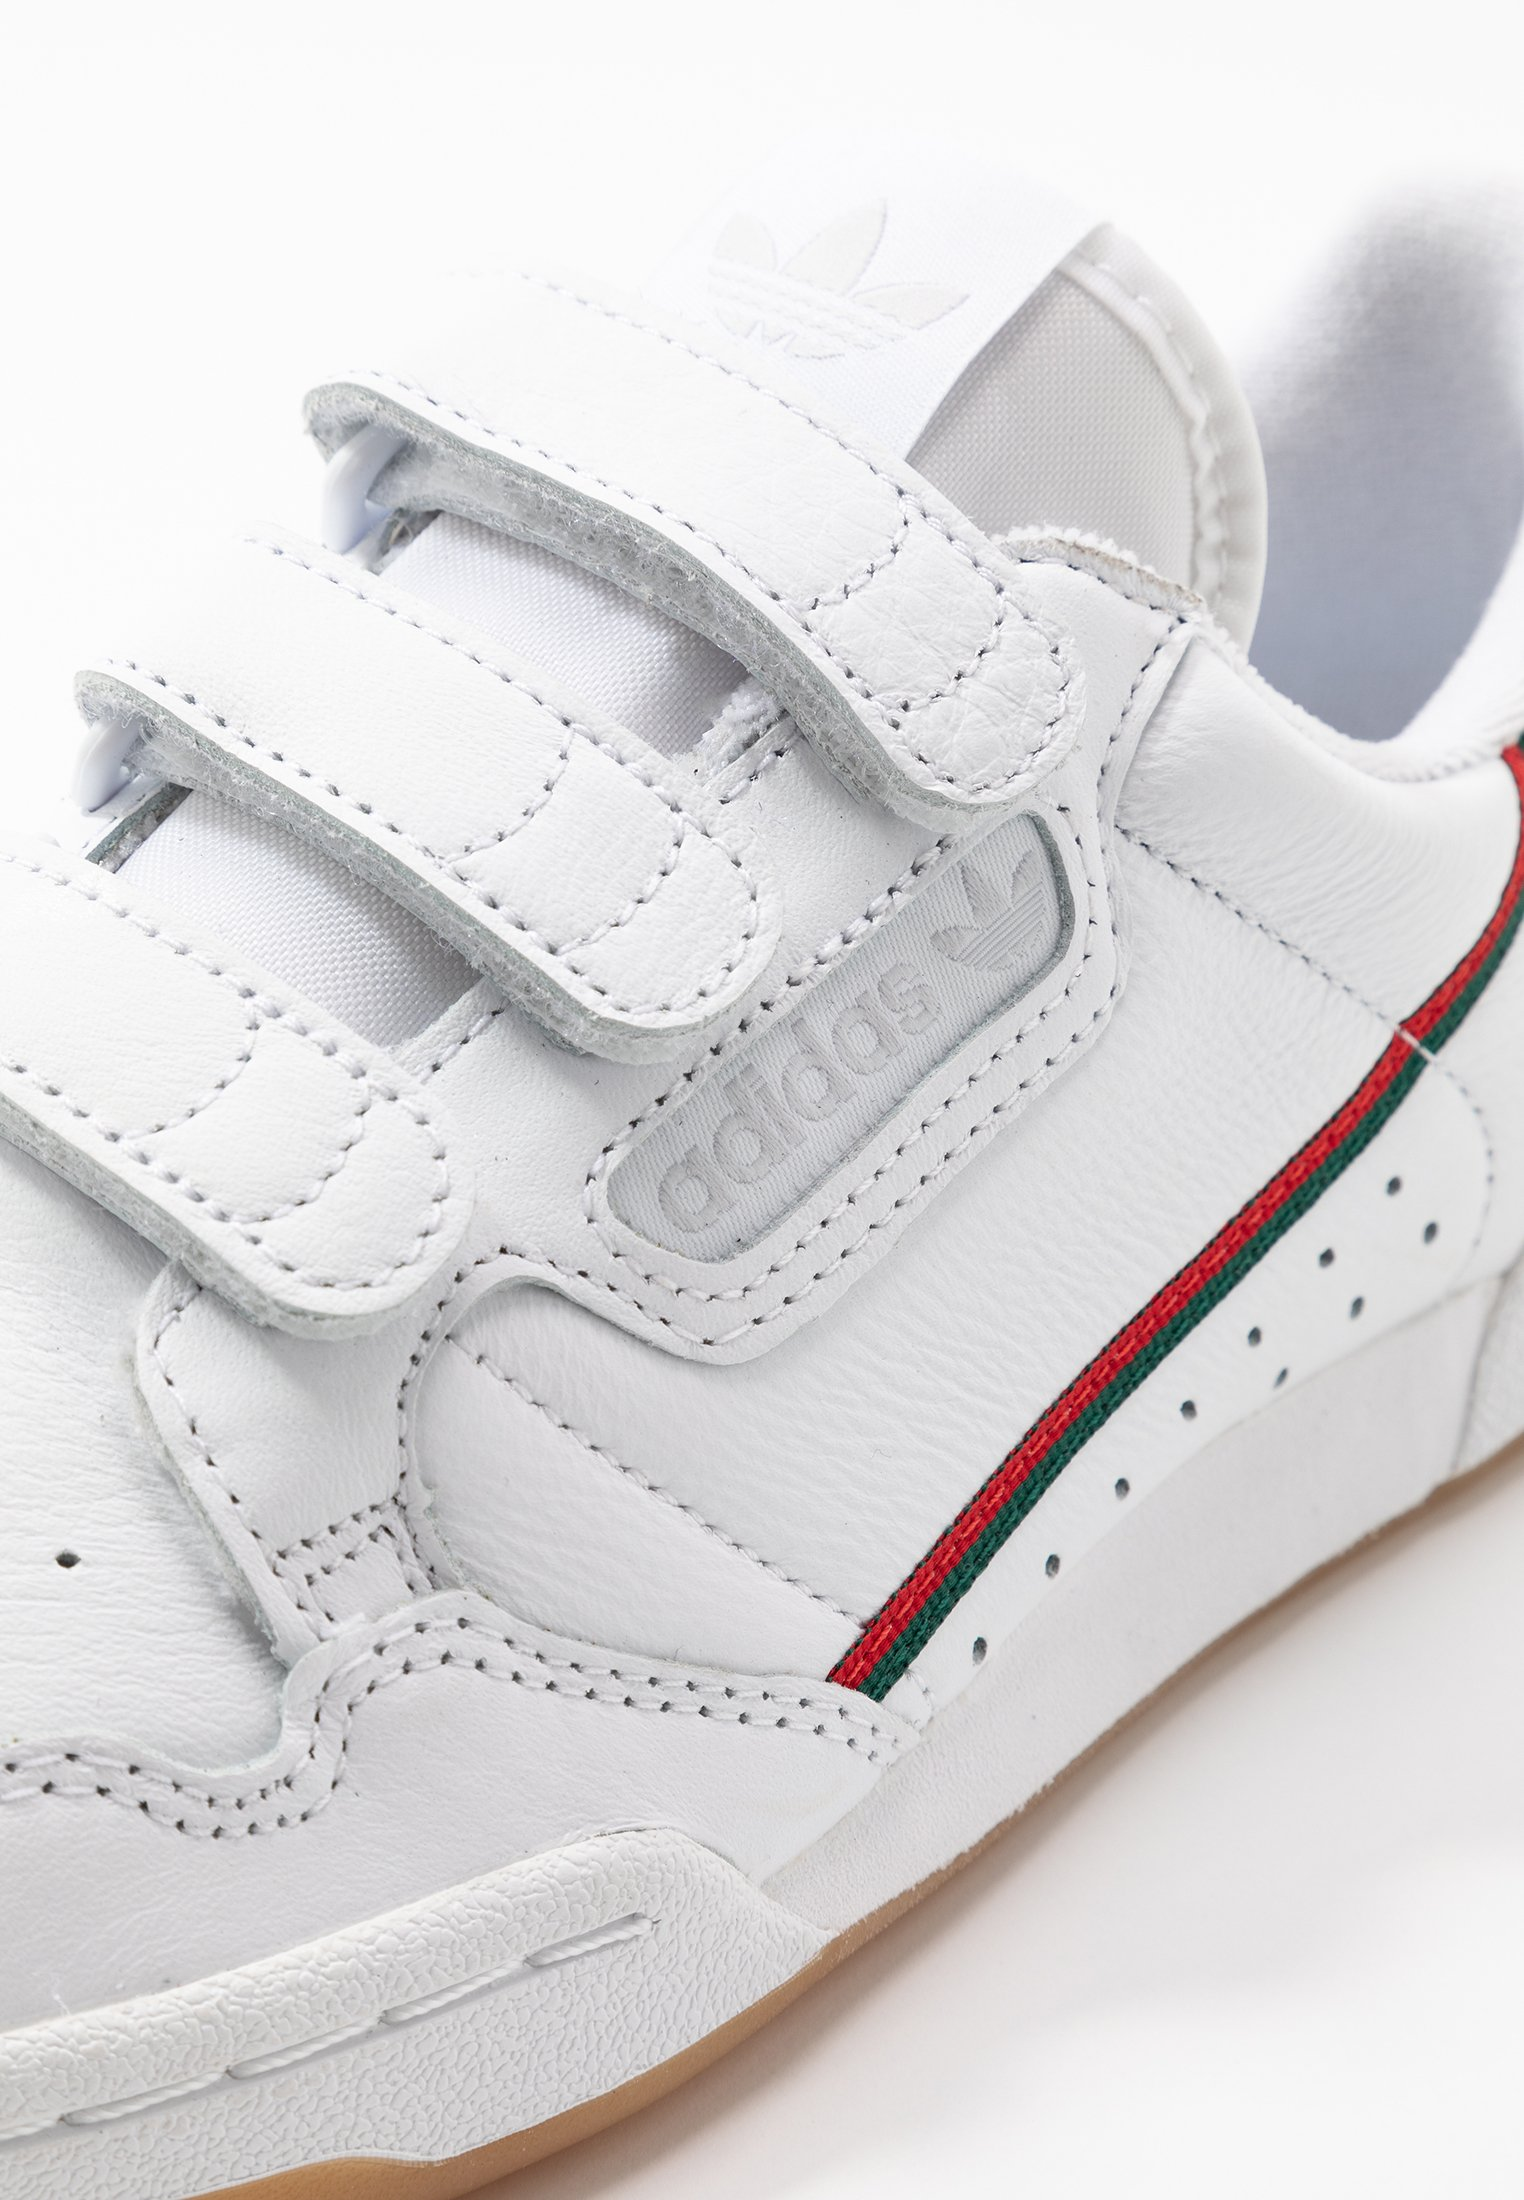 Adidas Originals Continental 80 Strap - Sneakers Basse Footwear White/clear Green/scarlet Scarpe Scontate